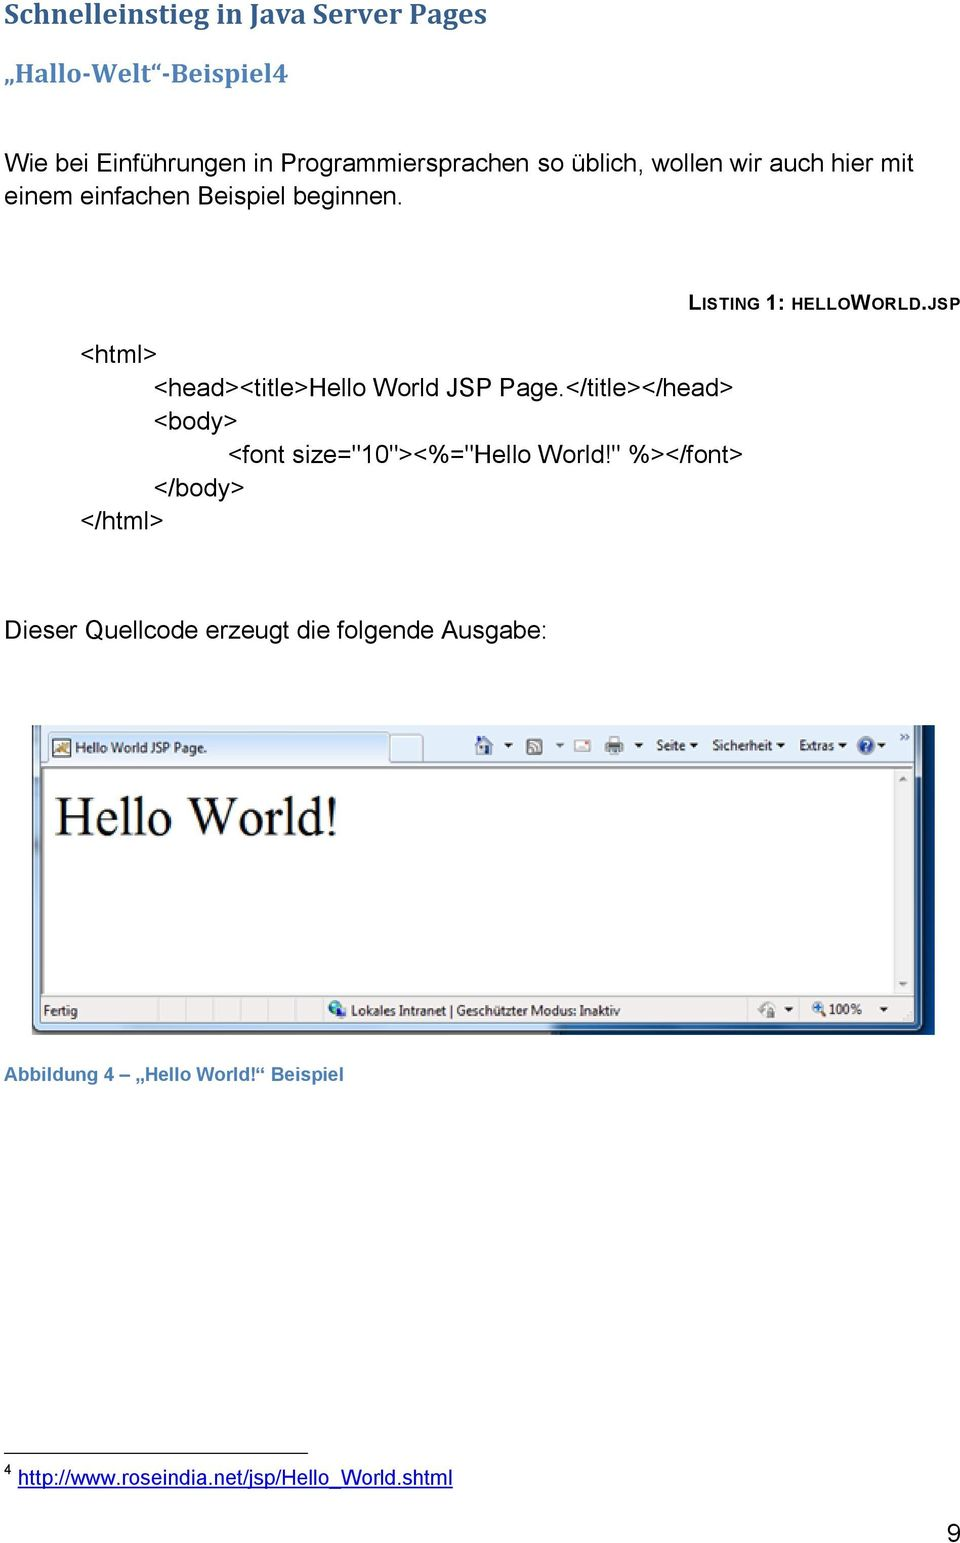 "</title></head> <body> <font size=""10""><%=""hello World!"" %></font> </body> </html> LISTING 1: HELLOWORLD."